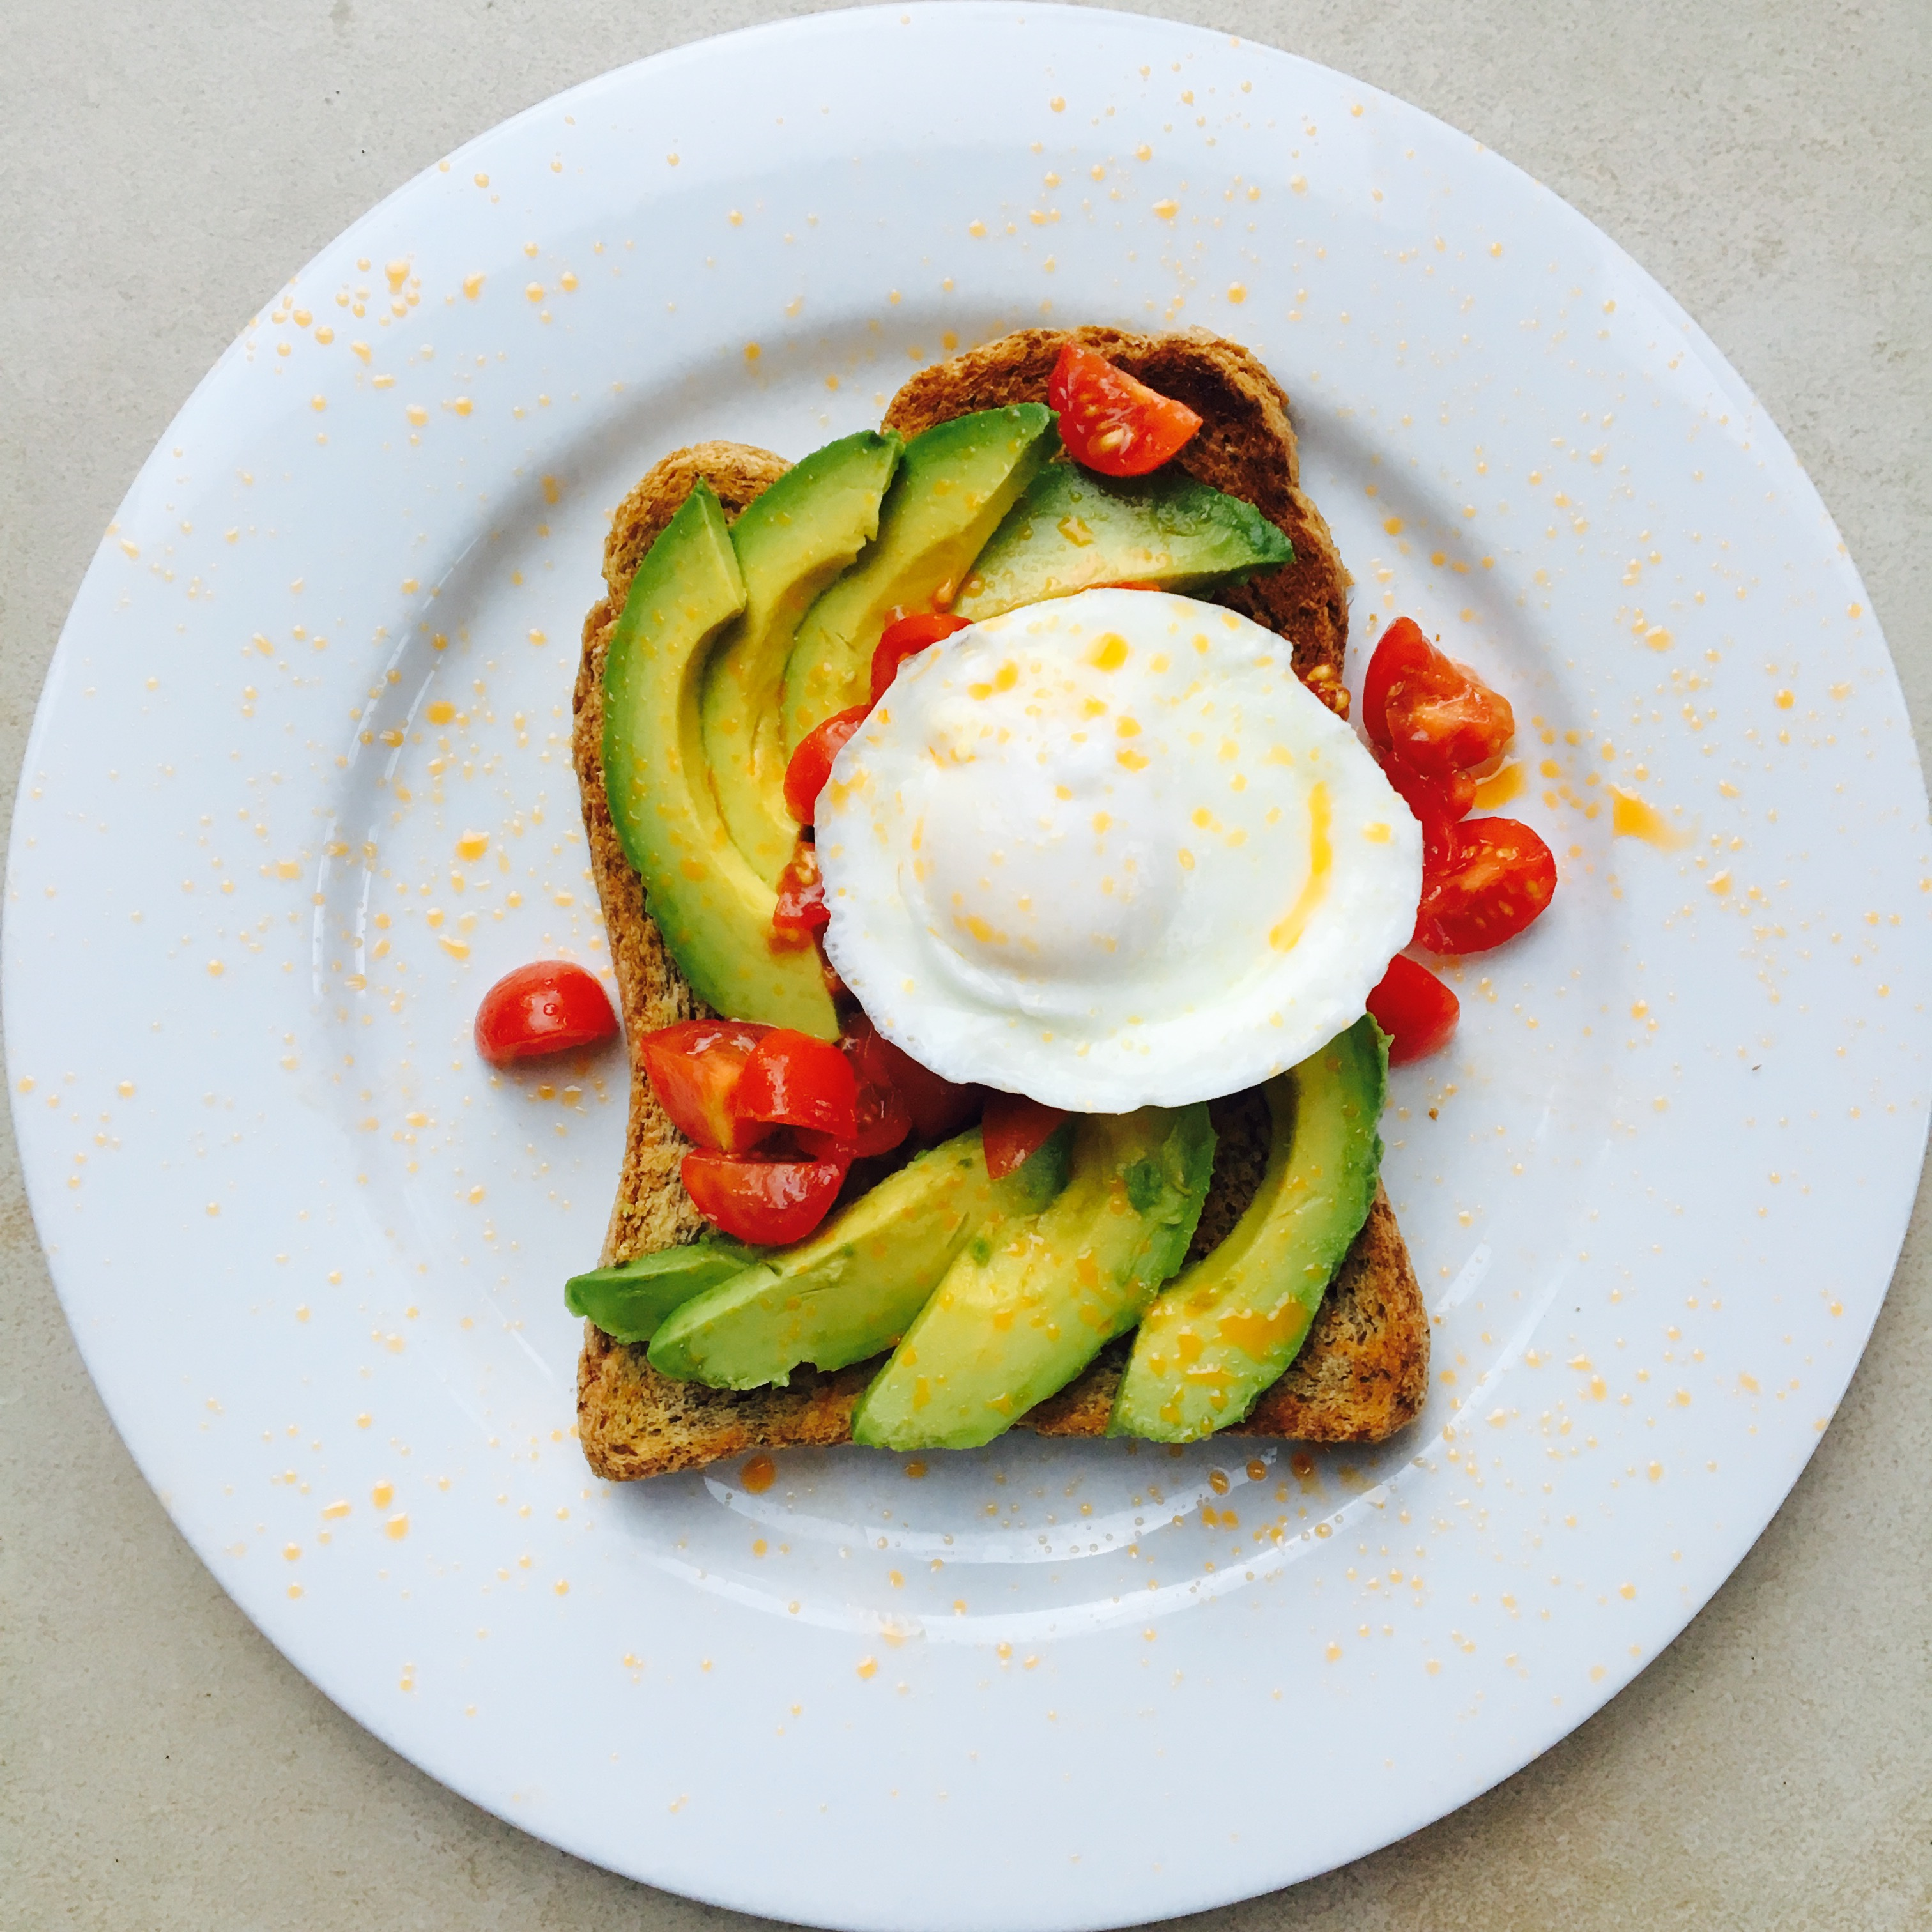 Avocado Toast with Tomato, Egg and Chilli